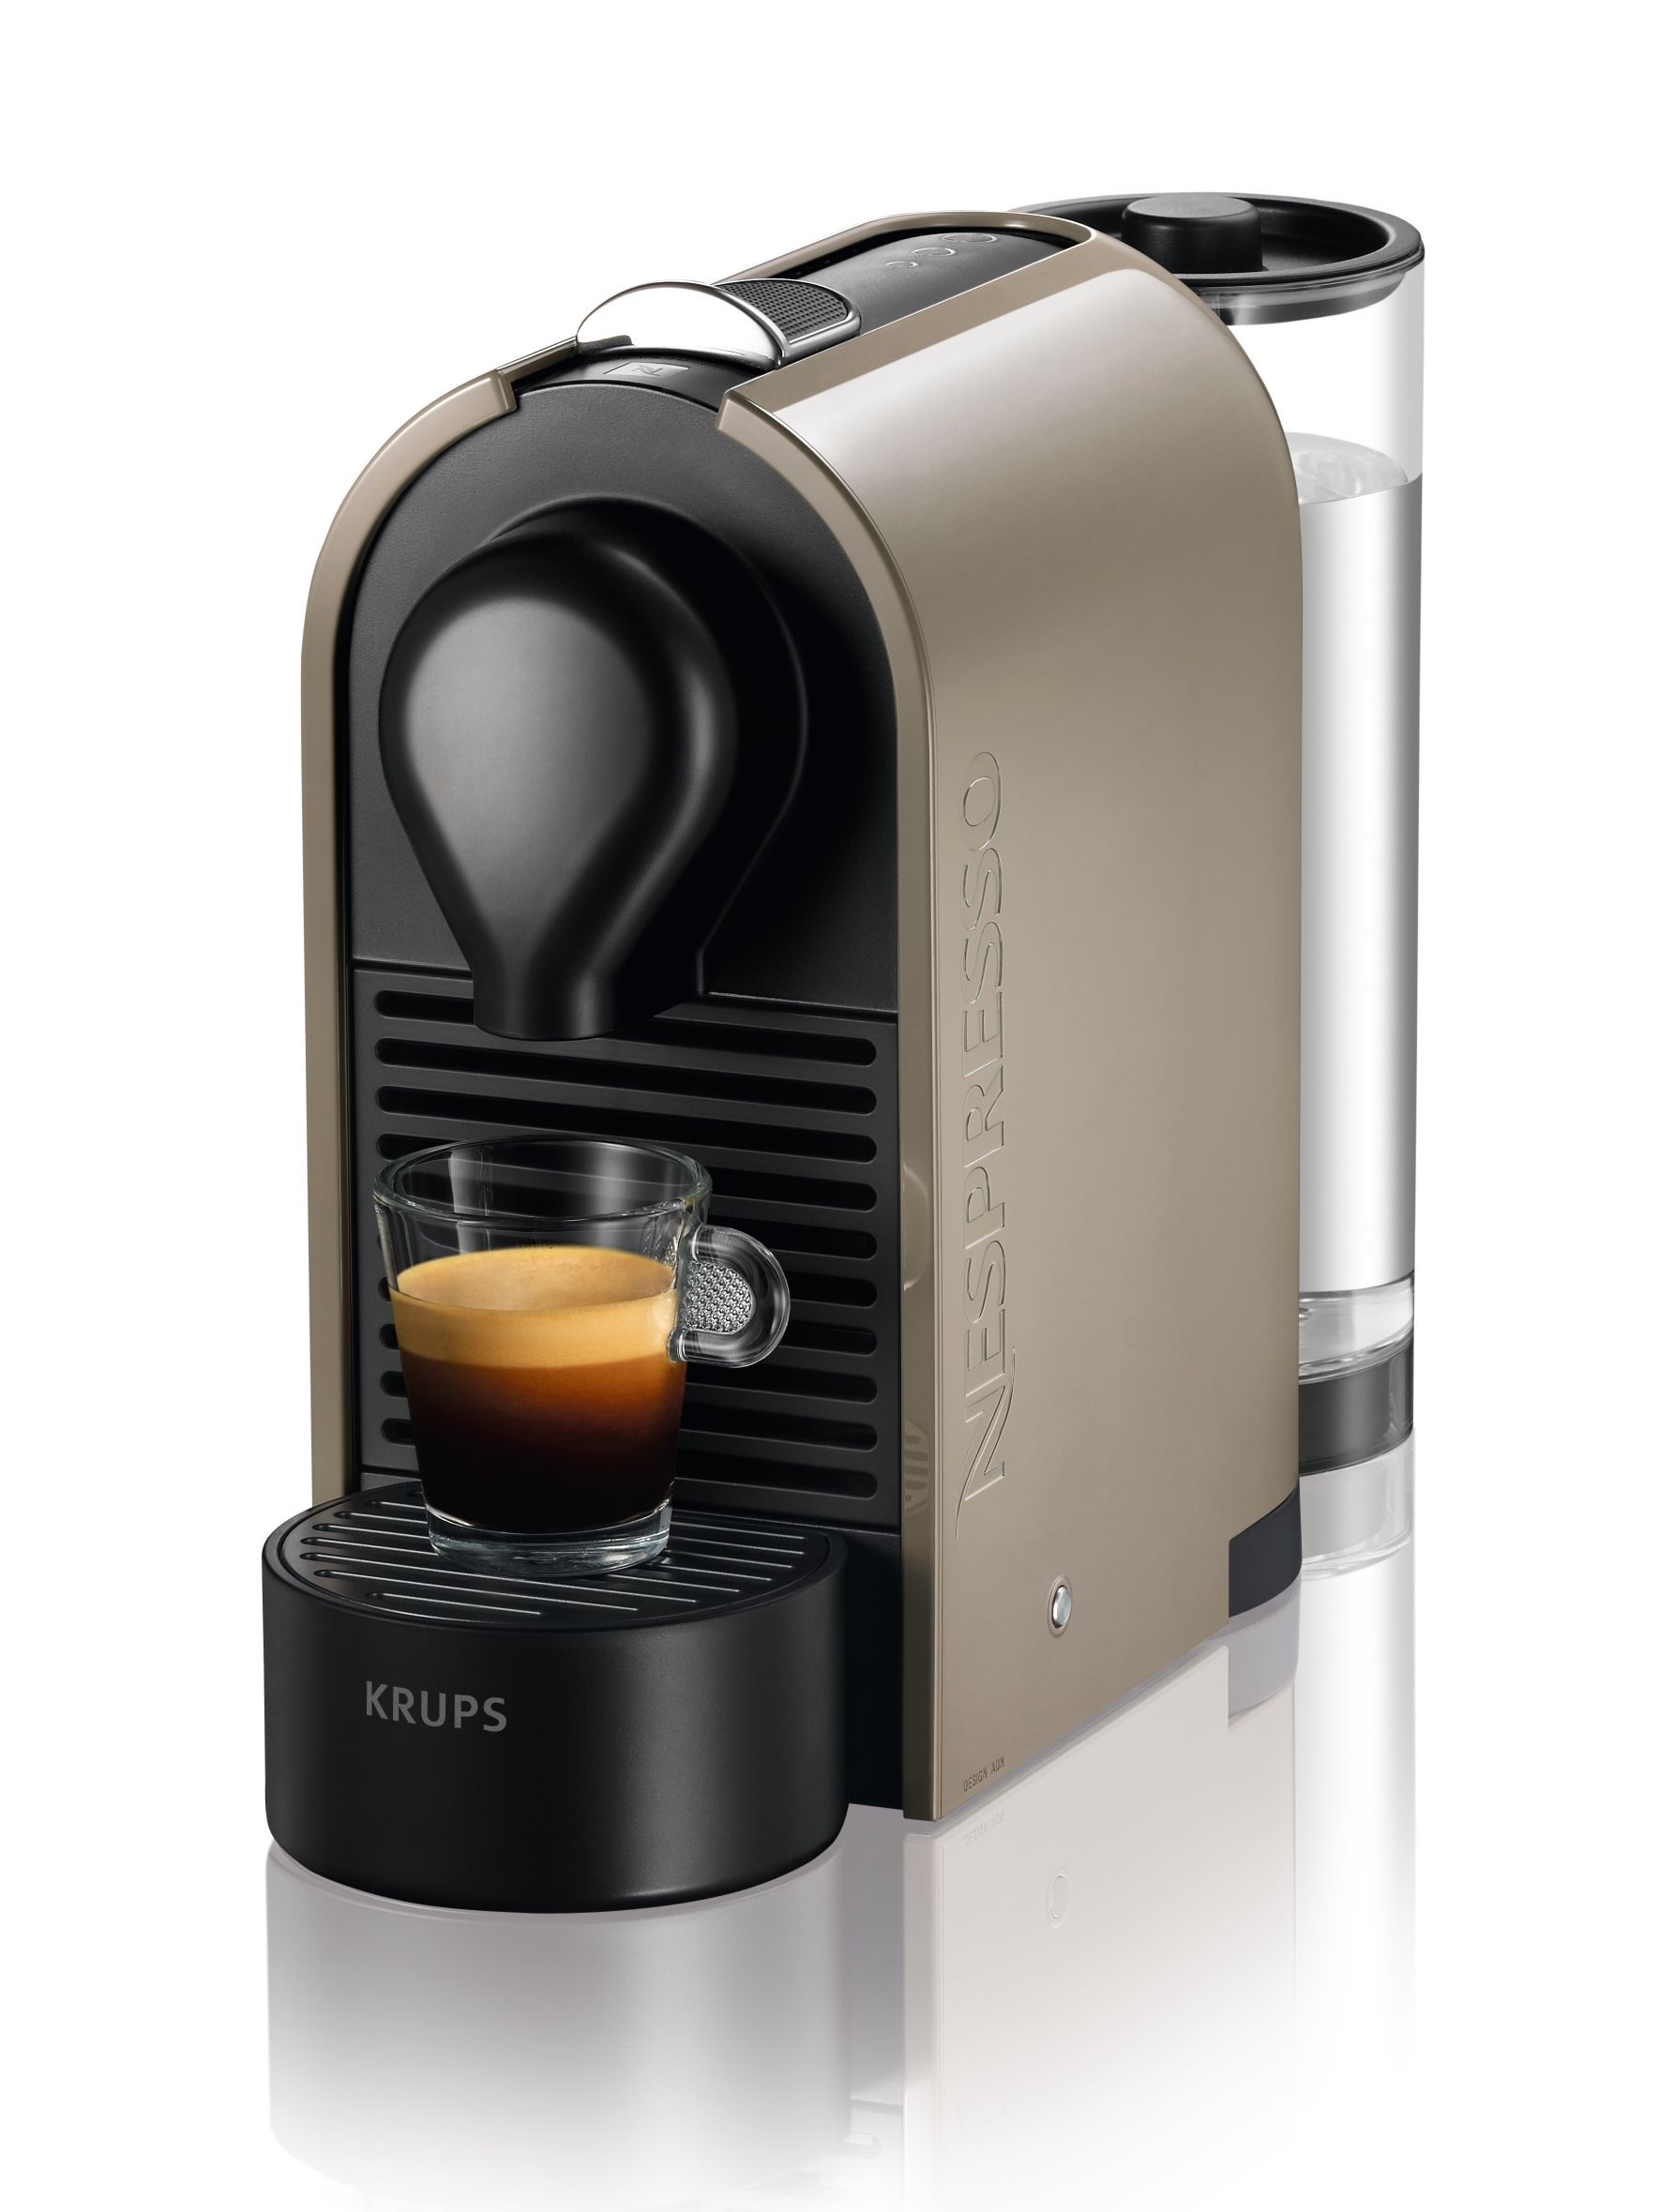 Nespresso Krups U Coffee Machine XN250A40